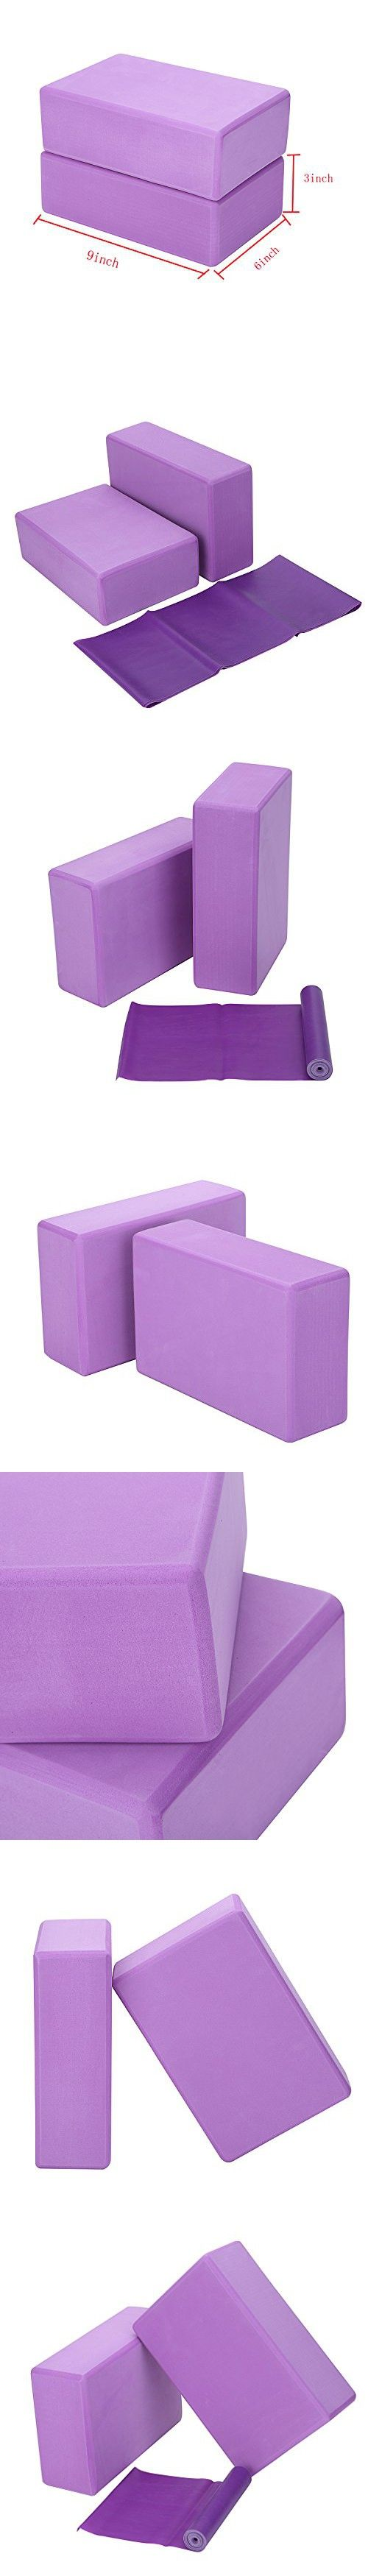 Yahill Yoga Block 2 Pack Set and Stretch Band for Gym Exercise Fitness Trainer